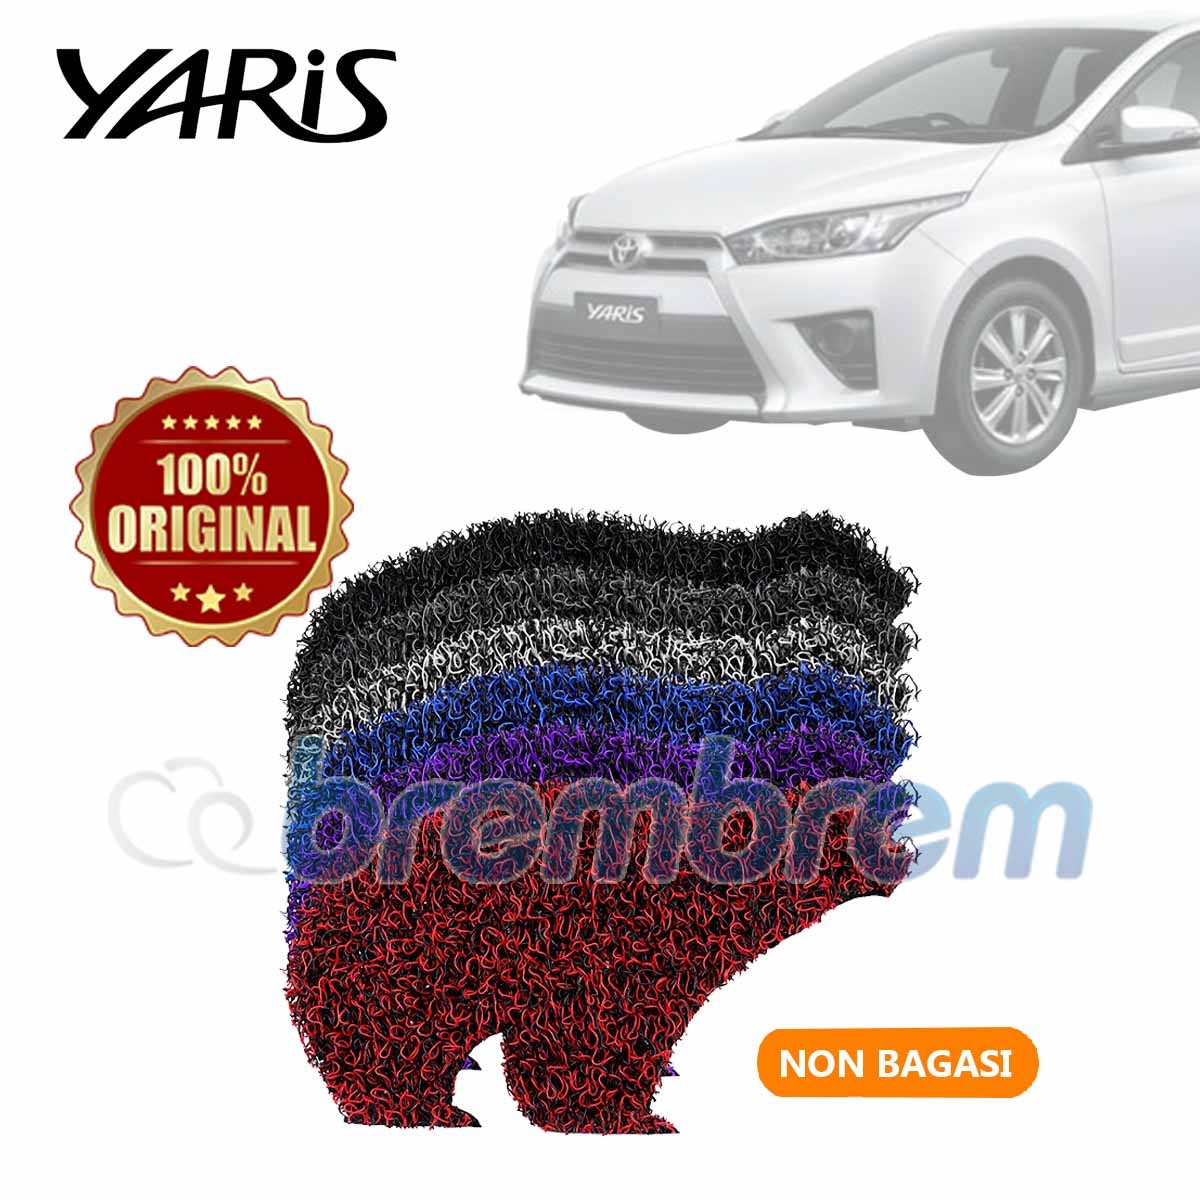 KARPET FIRST CLASS NON BAGASI TOYOTA ALL NEW YARIS